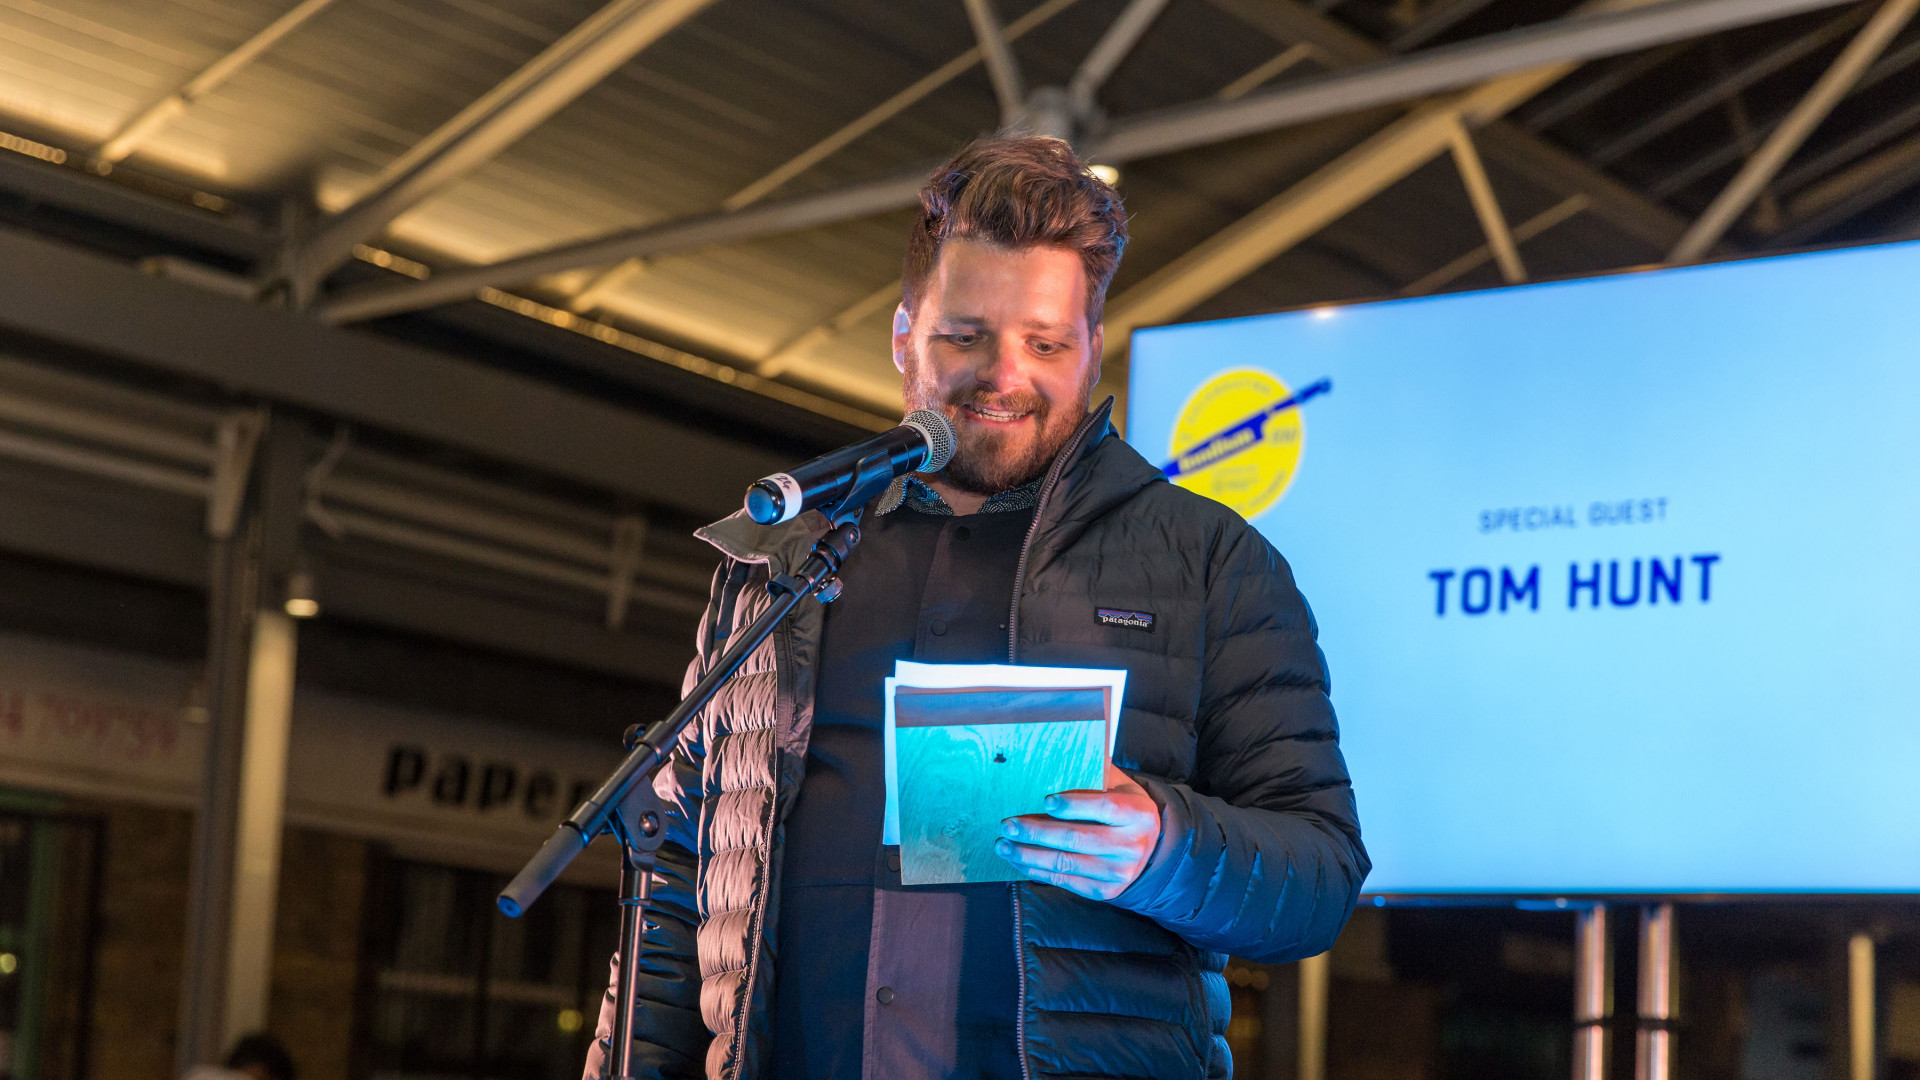 The Foodism 100 awards night 2019: guest speaker Tom Hunt addresses the crowd